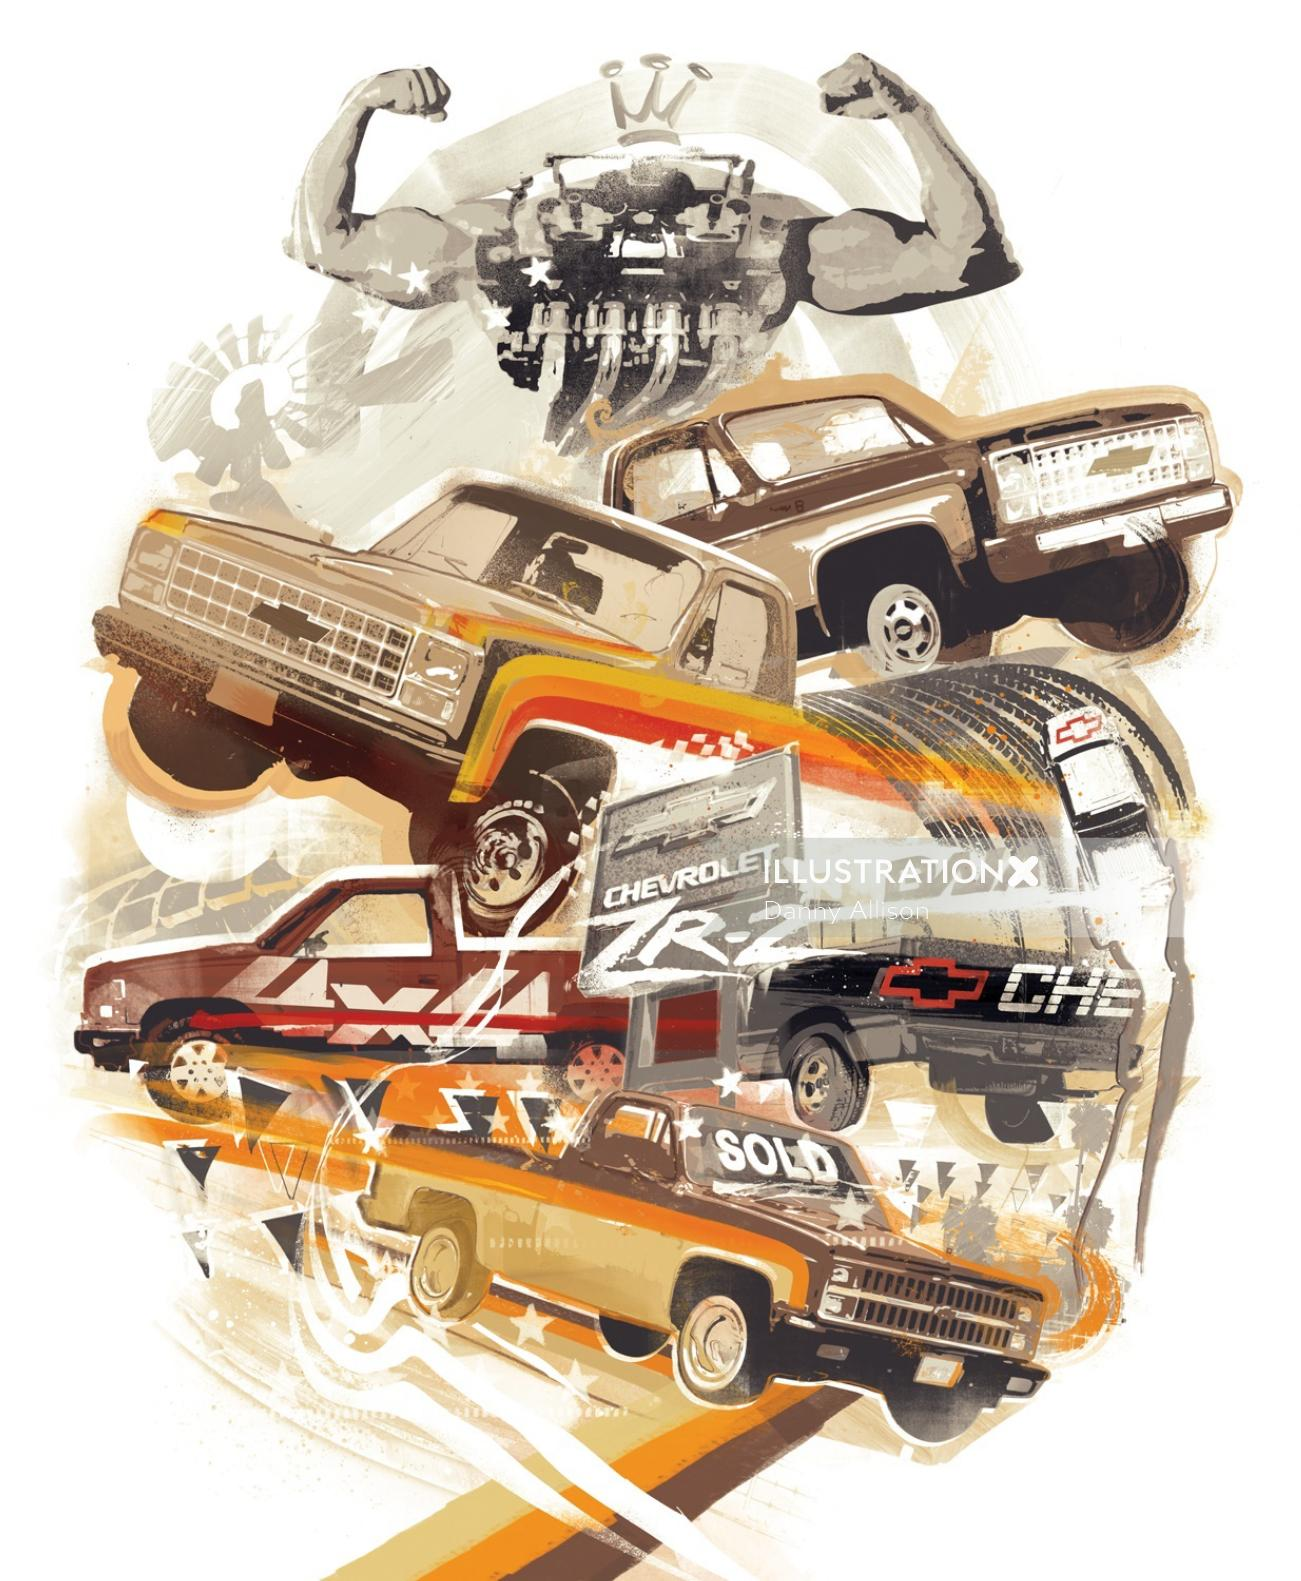 Chevrolet Cars and Truck Transport Collection